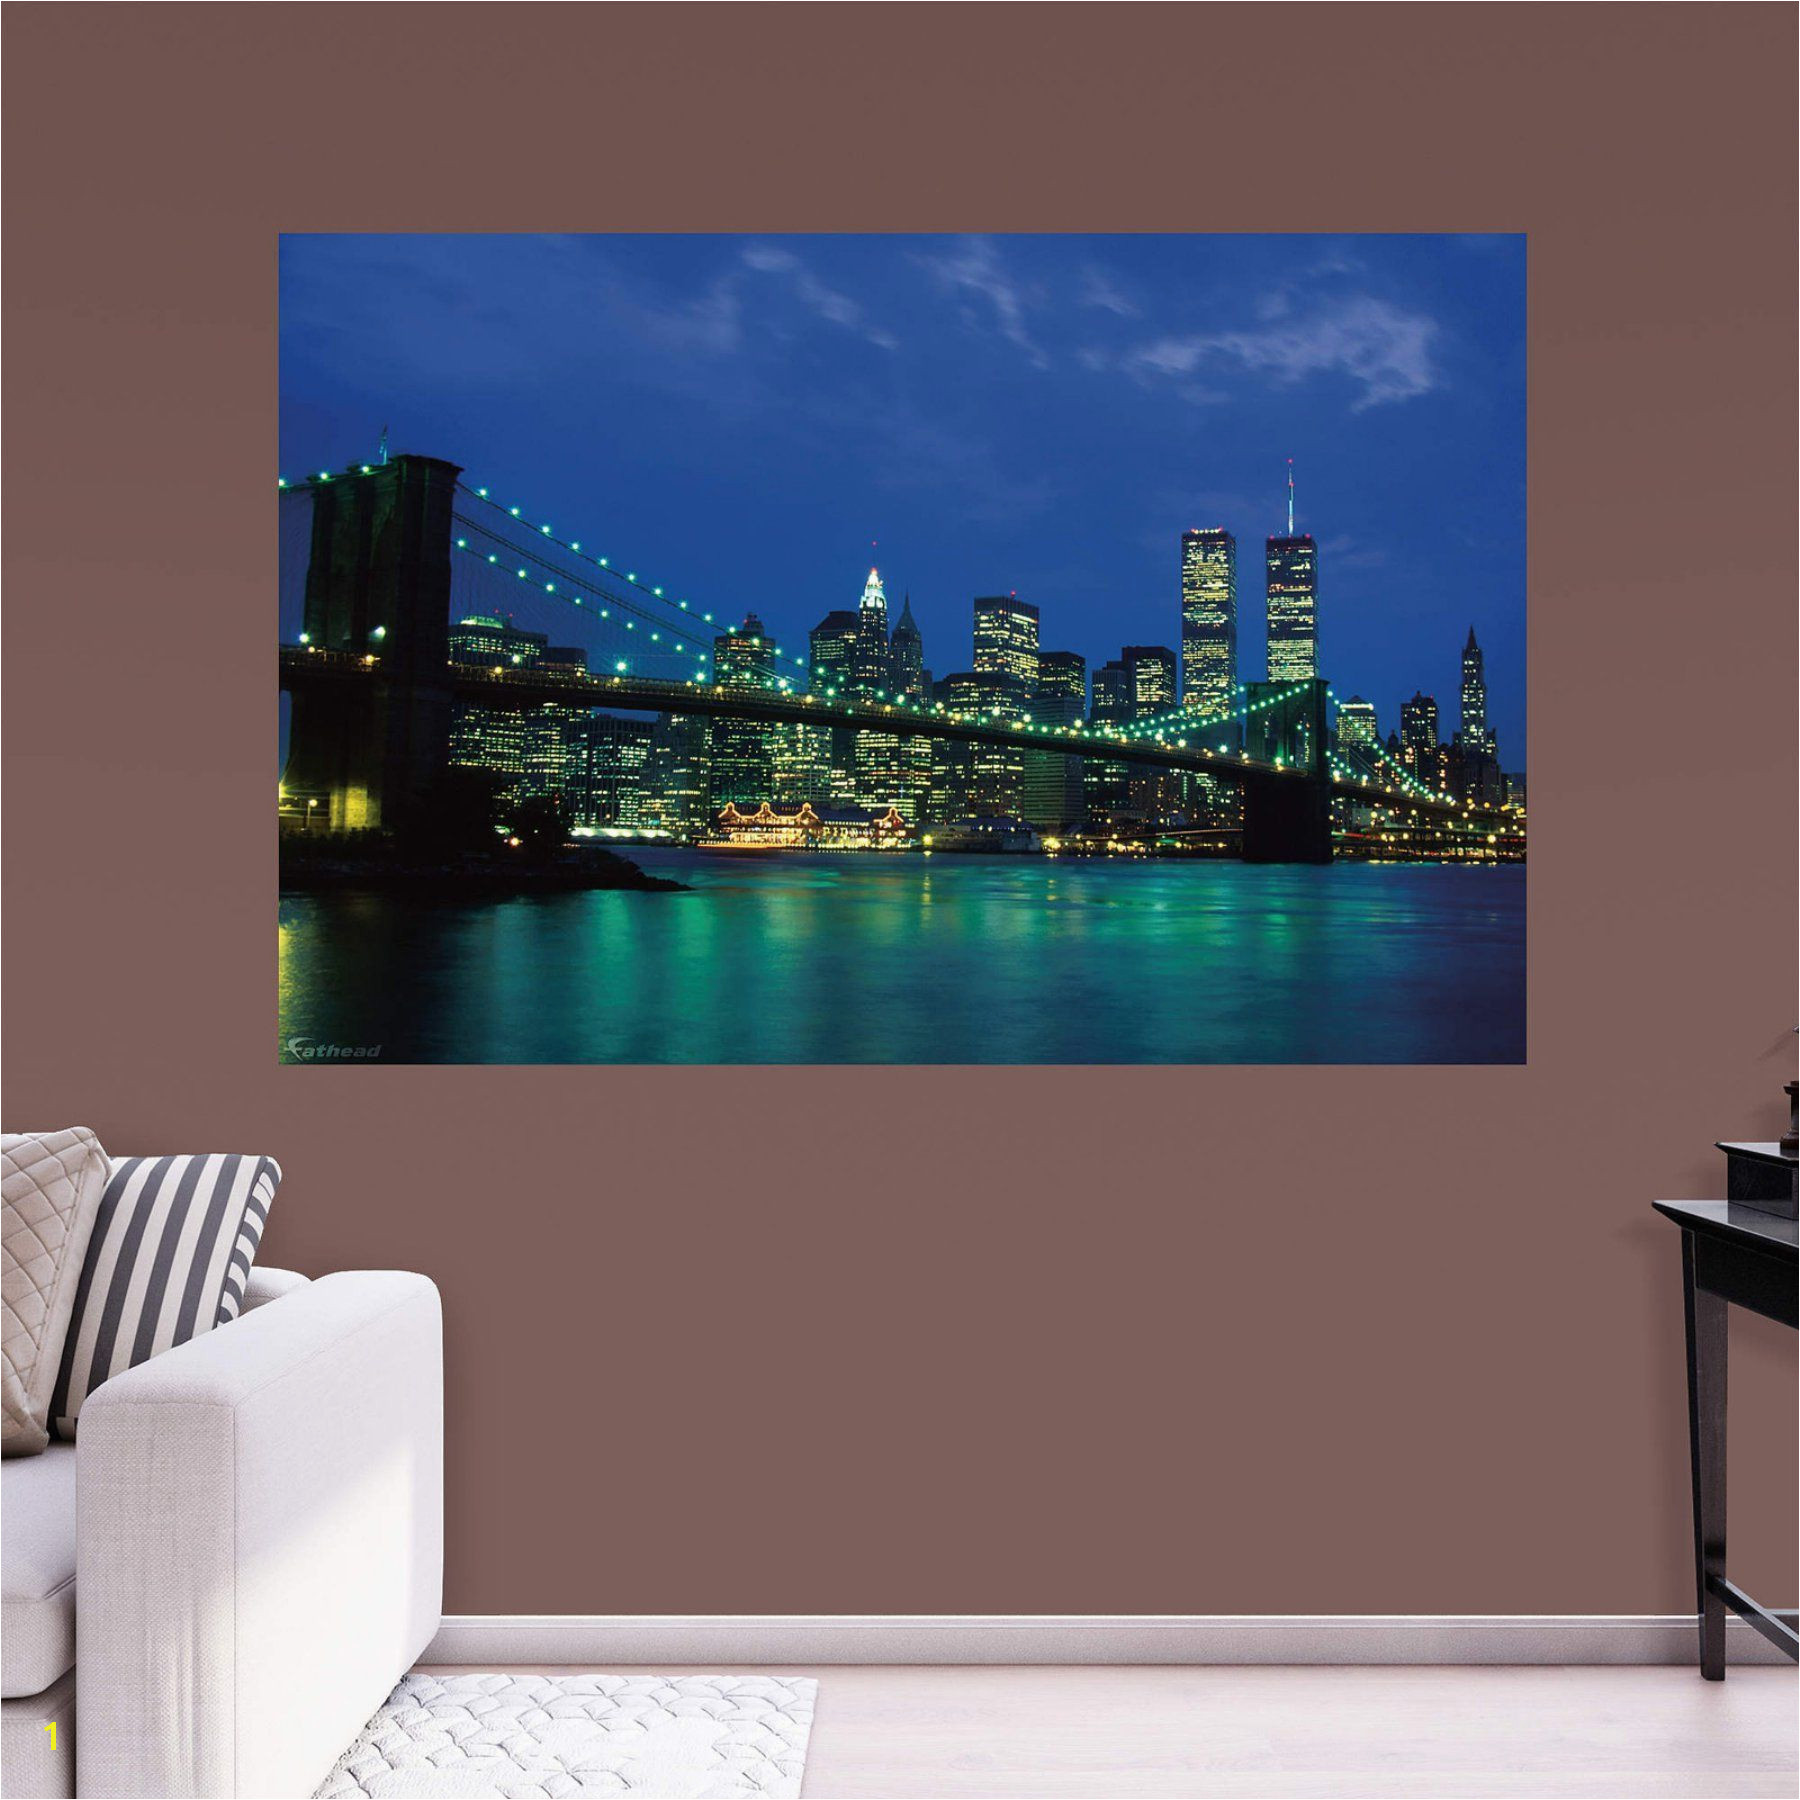 Fathead New York City Twin Towers Nightscape Wall Mural 69